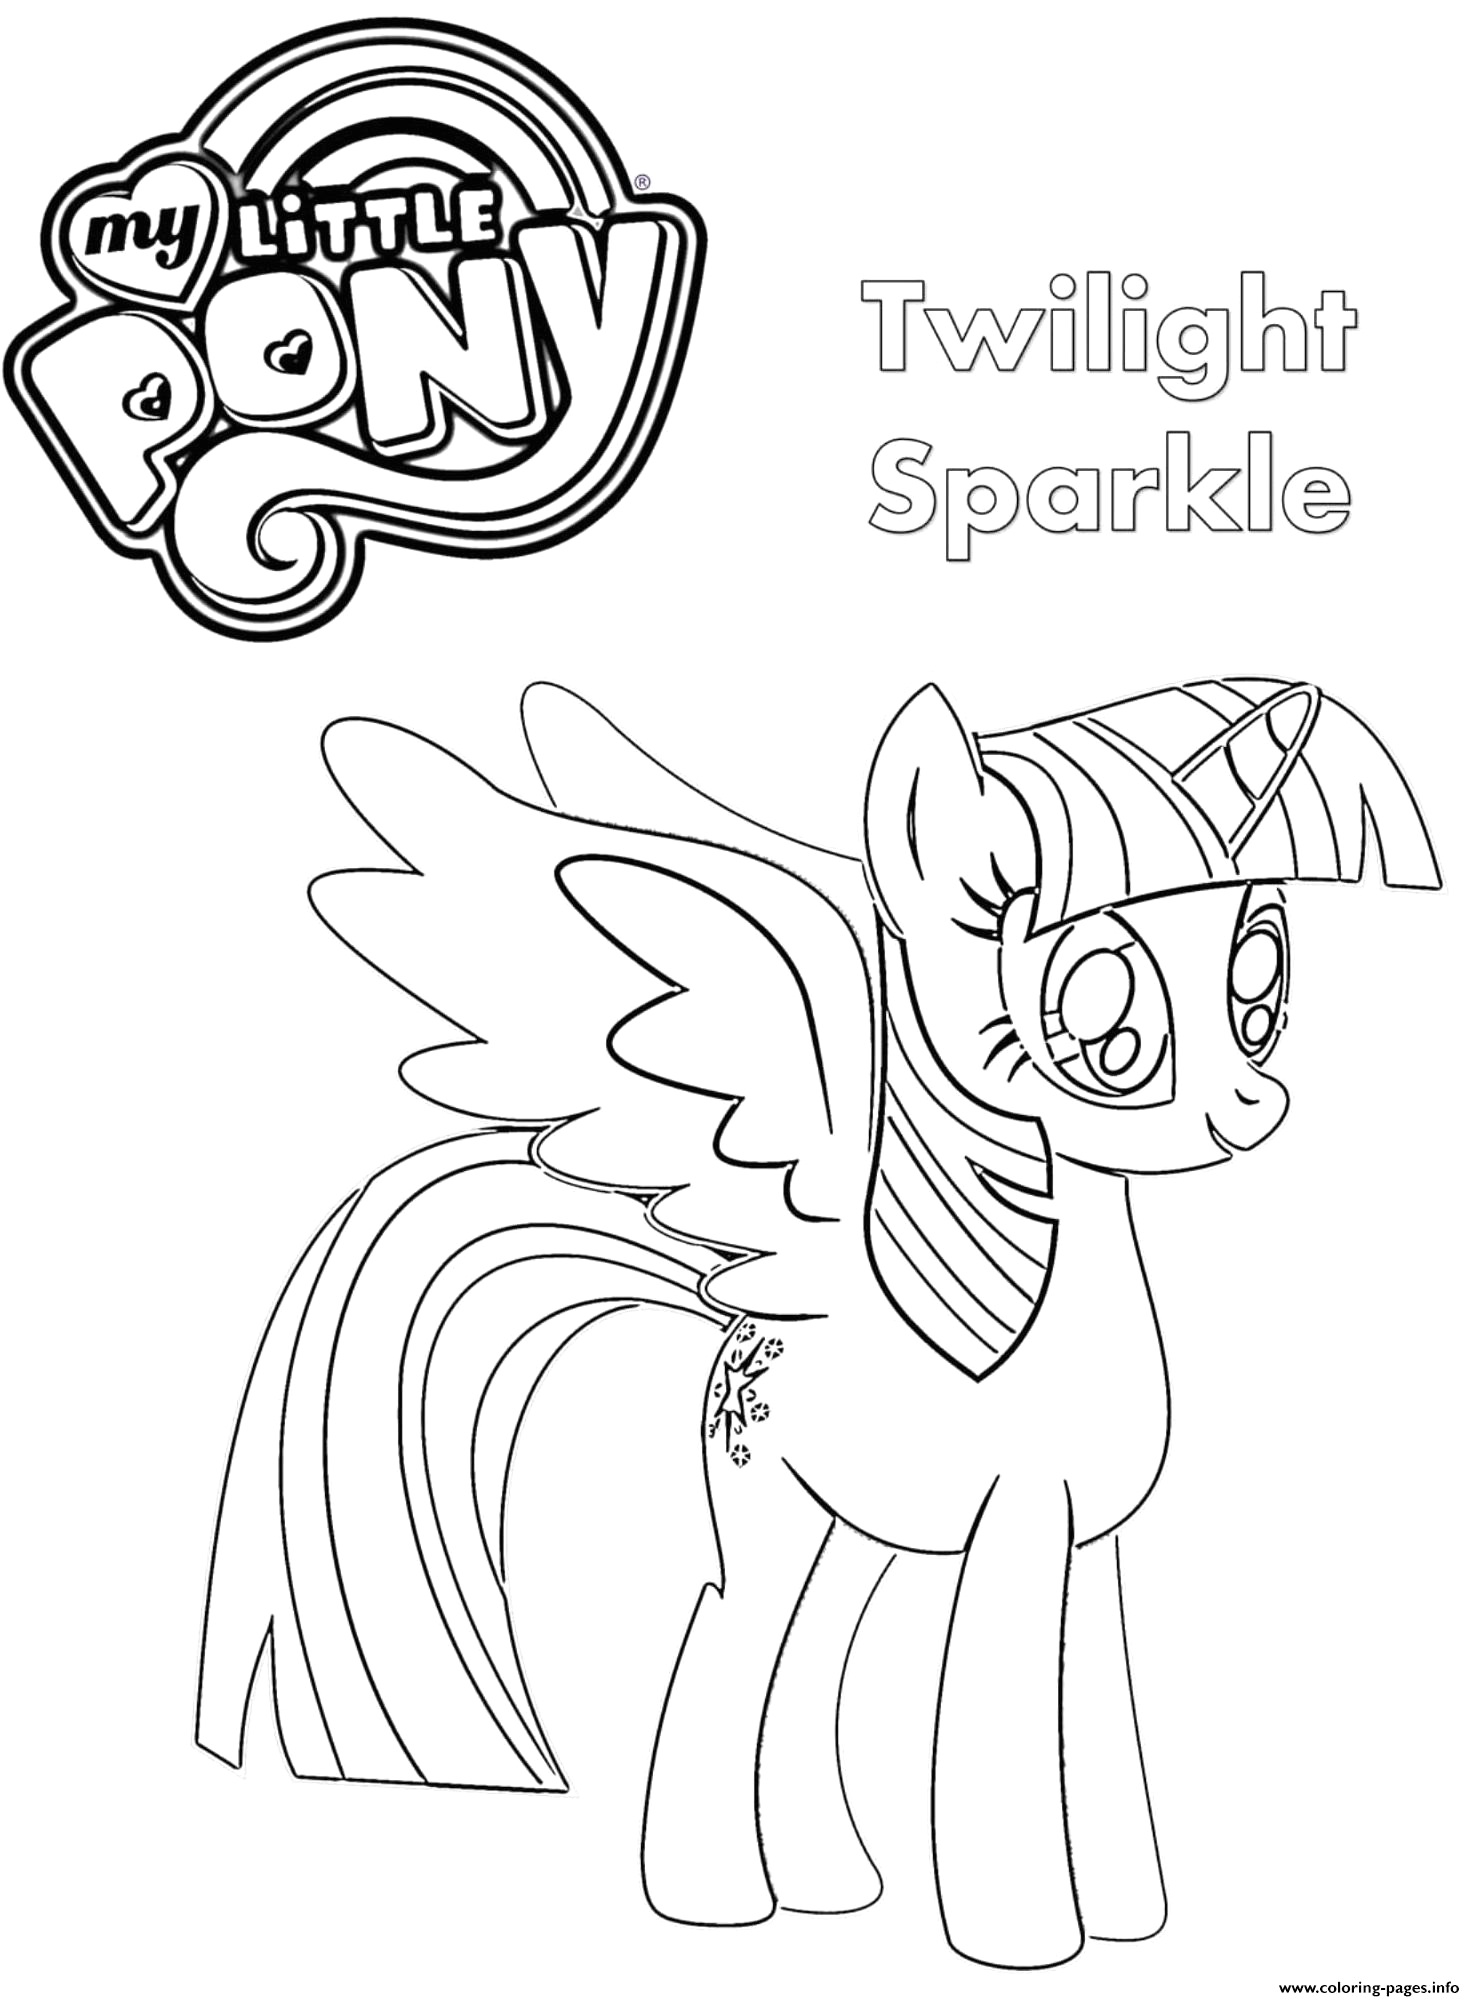 twilight sparkle my little pony printable coloring pages book